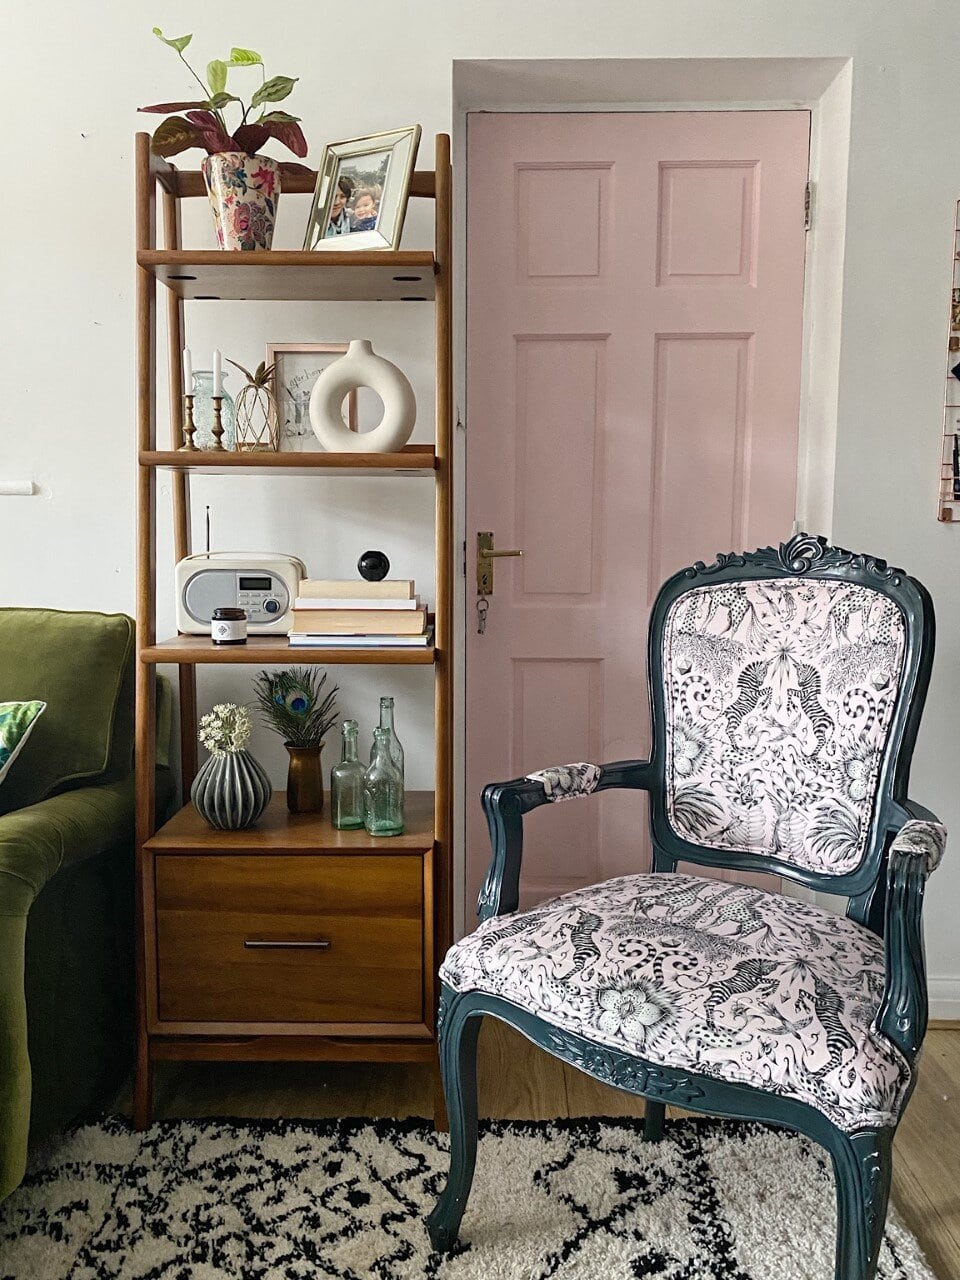 Emma J Shipley, Clarke & Clarke, maximalism, maximalist, colour, colour in the home, pattern, print, design, pattern design, nature, wilderie, wilderie collection, interior design, interiors, interior designer, soft furnishings, cushions, sofas, throws, colourful